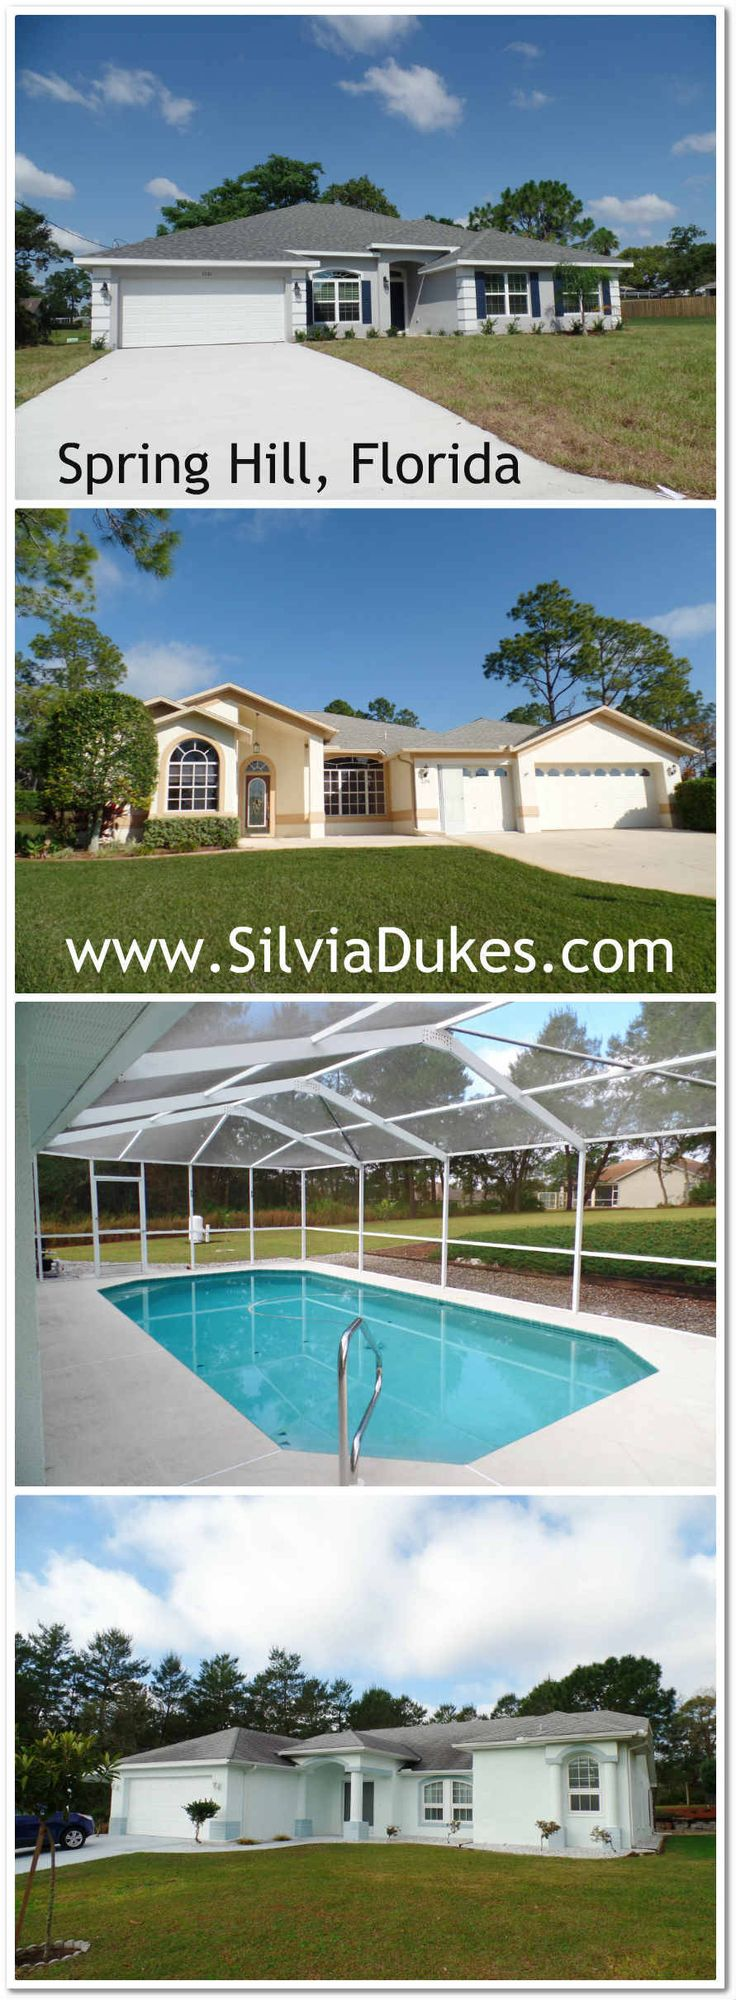 Spring Hill Florida Homes for Sale by Silvia Dukes